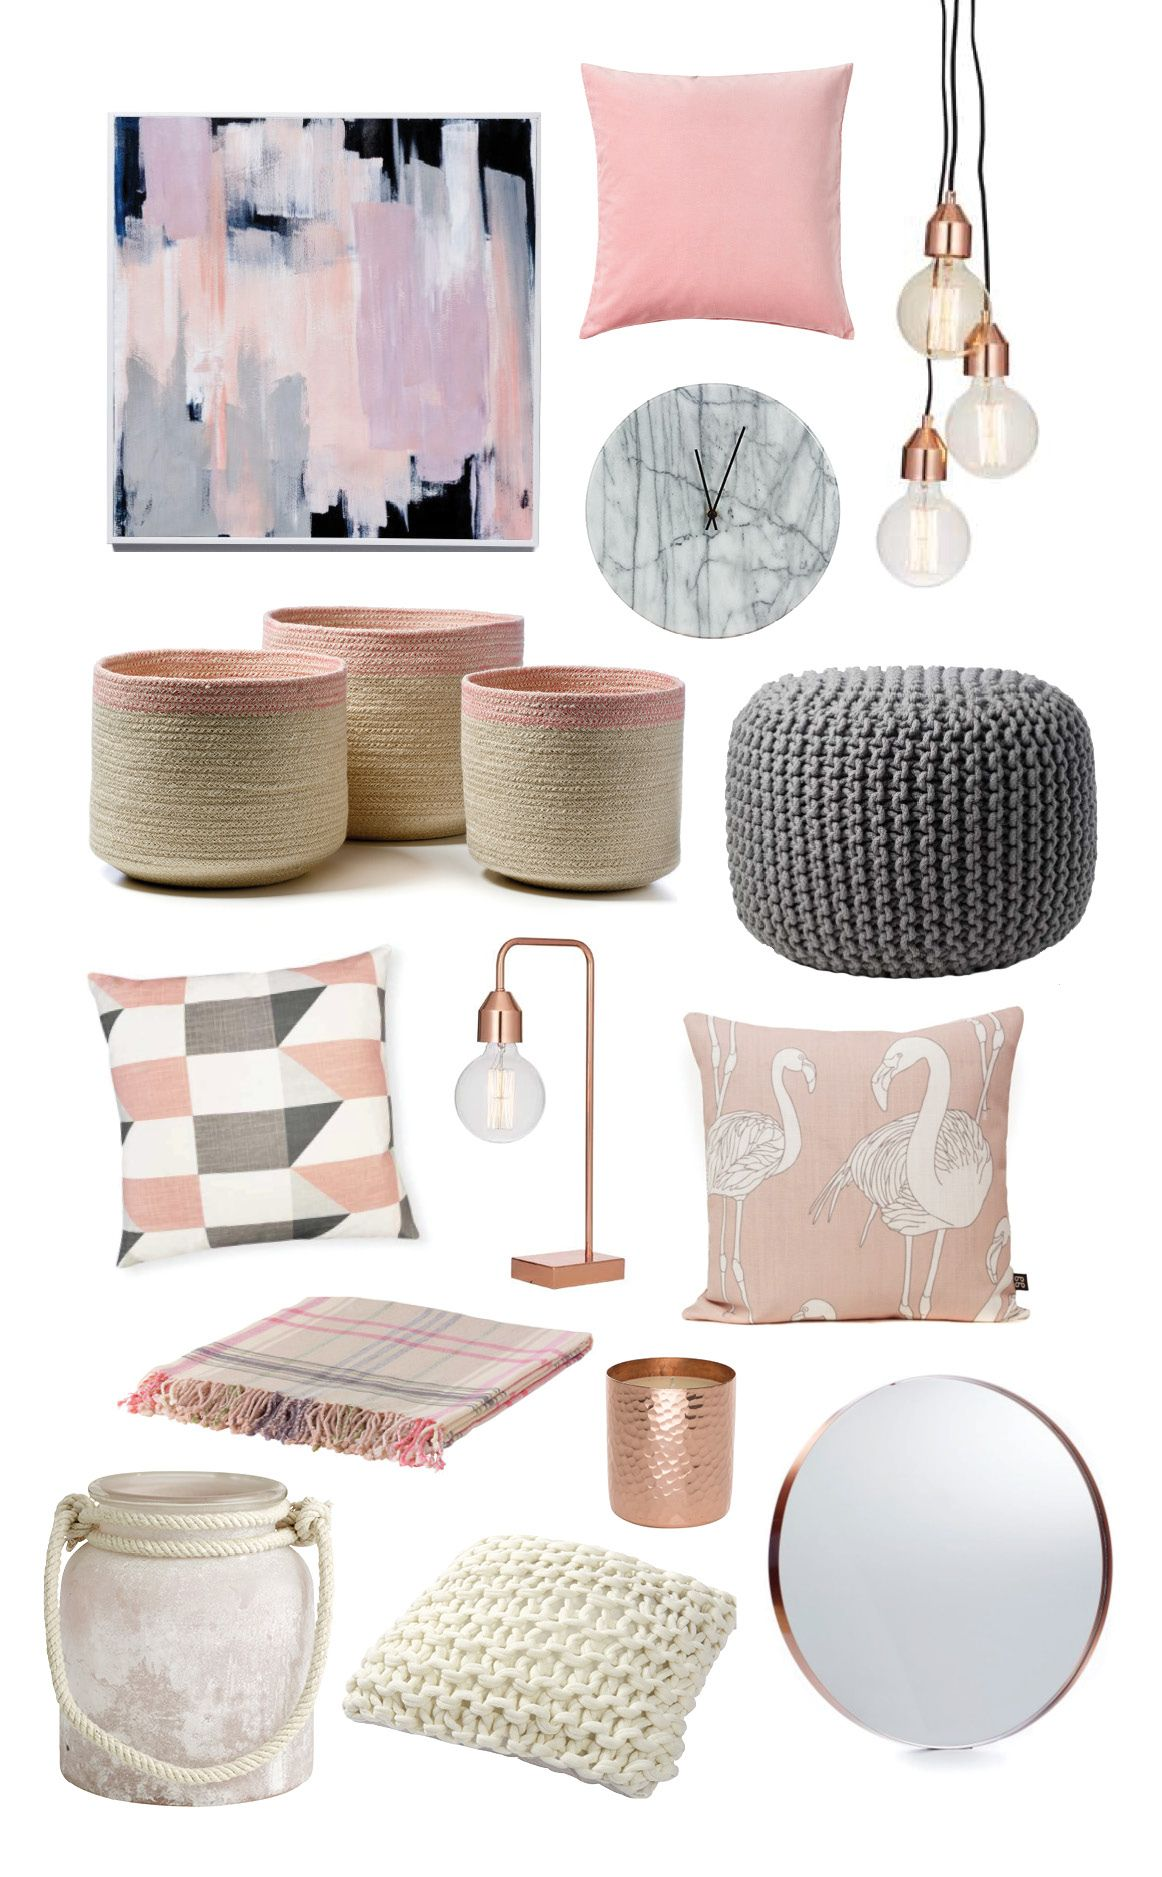 Trending items blush pink click through for stockists for Home decor stuff